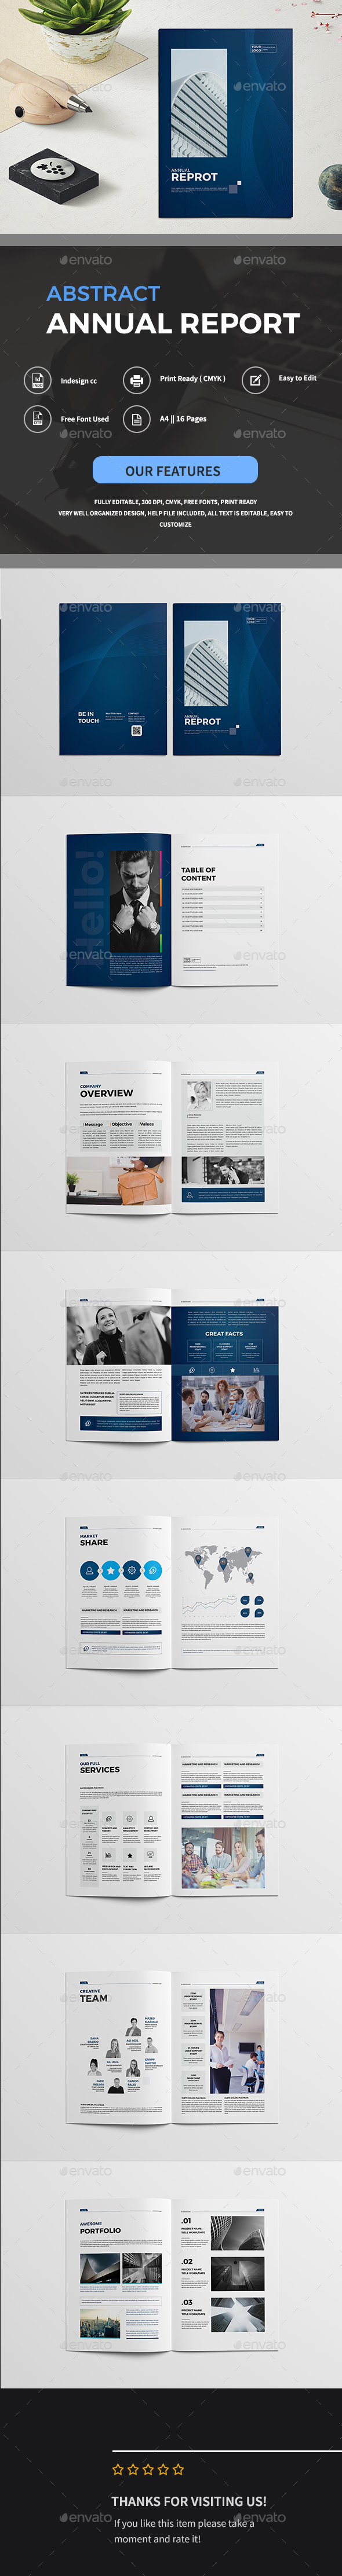 Abstract Annual Reprot Brochure - Corporate Brochures